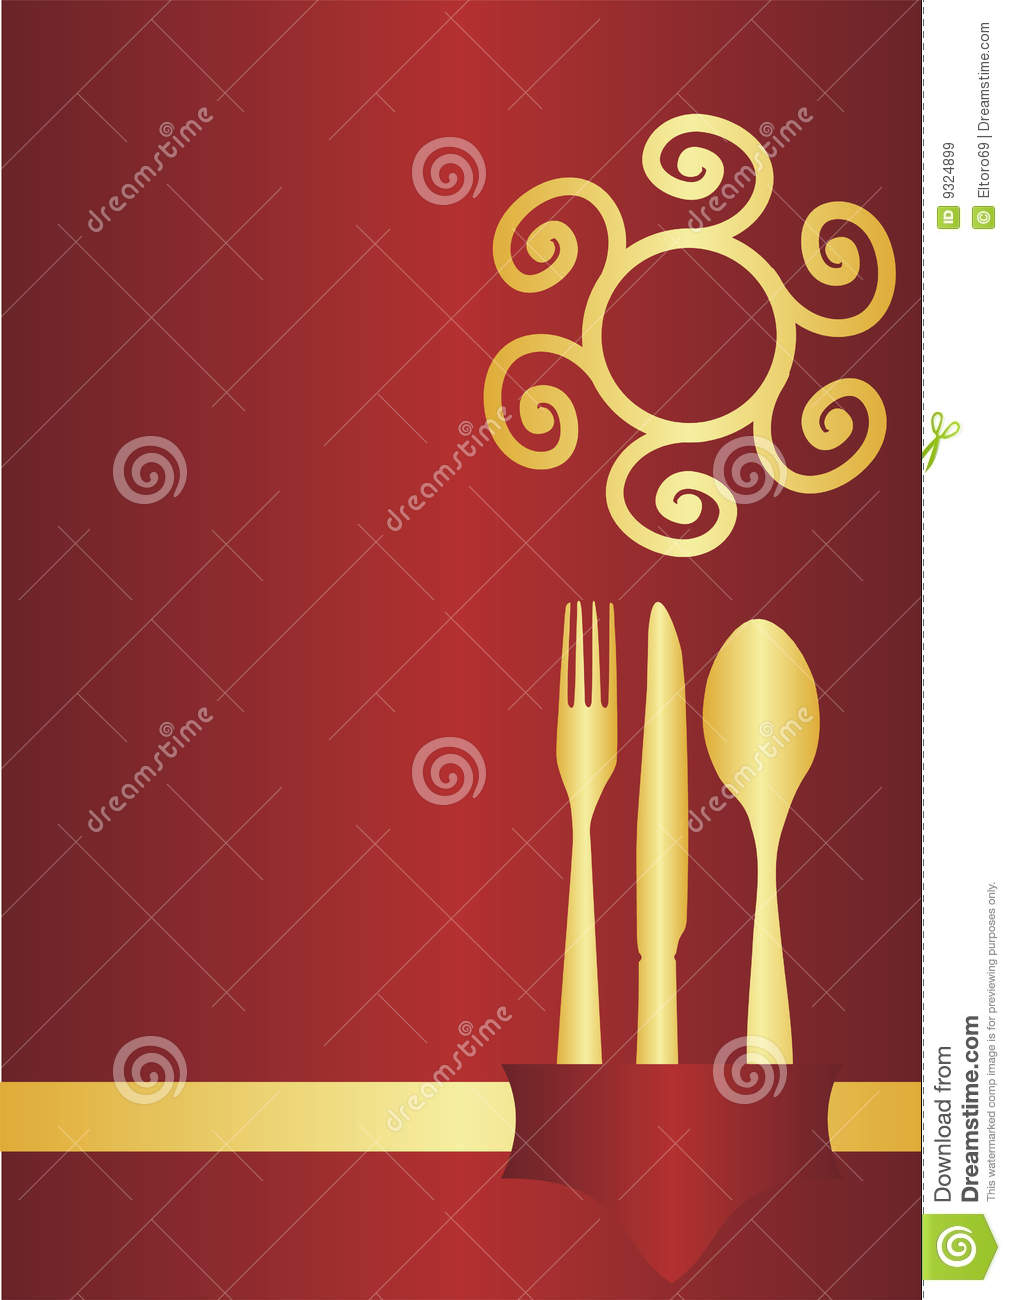 Menu Card Design Royalty Free Stock Images - Image: 9324899